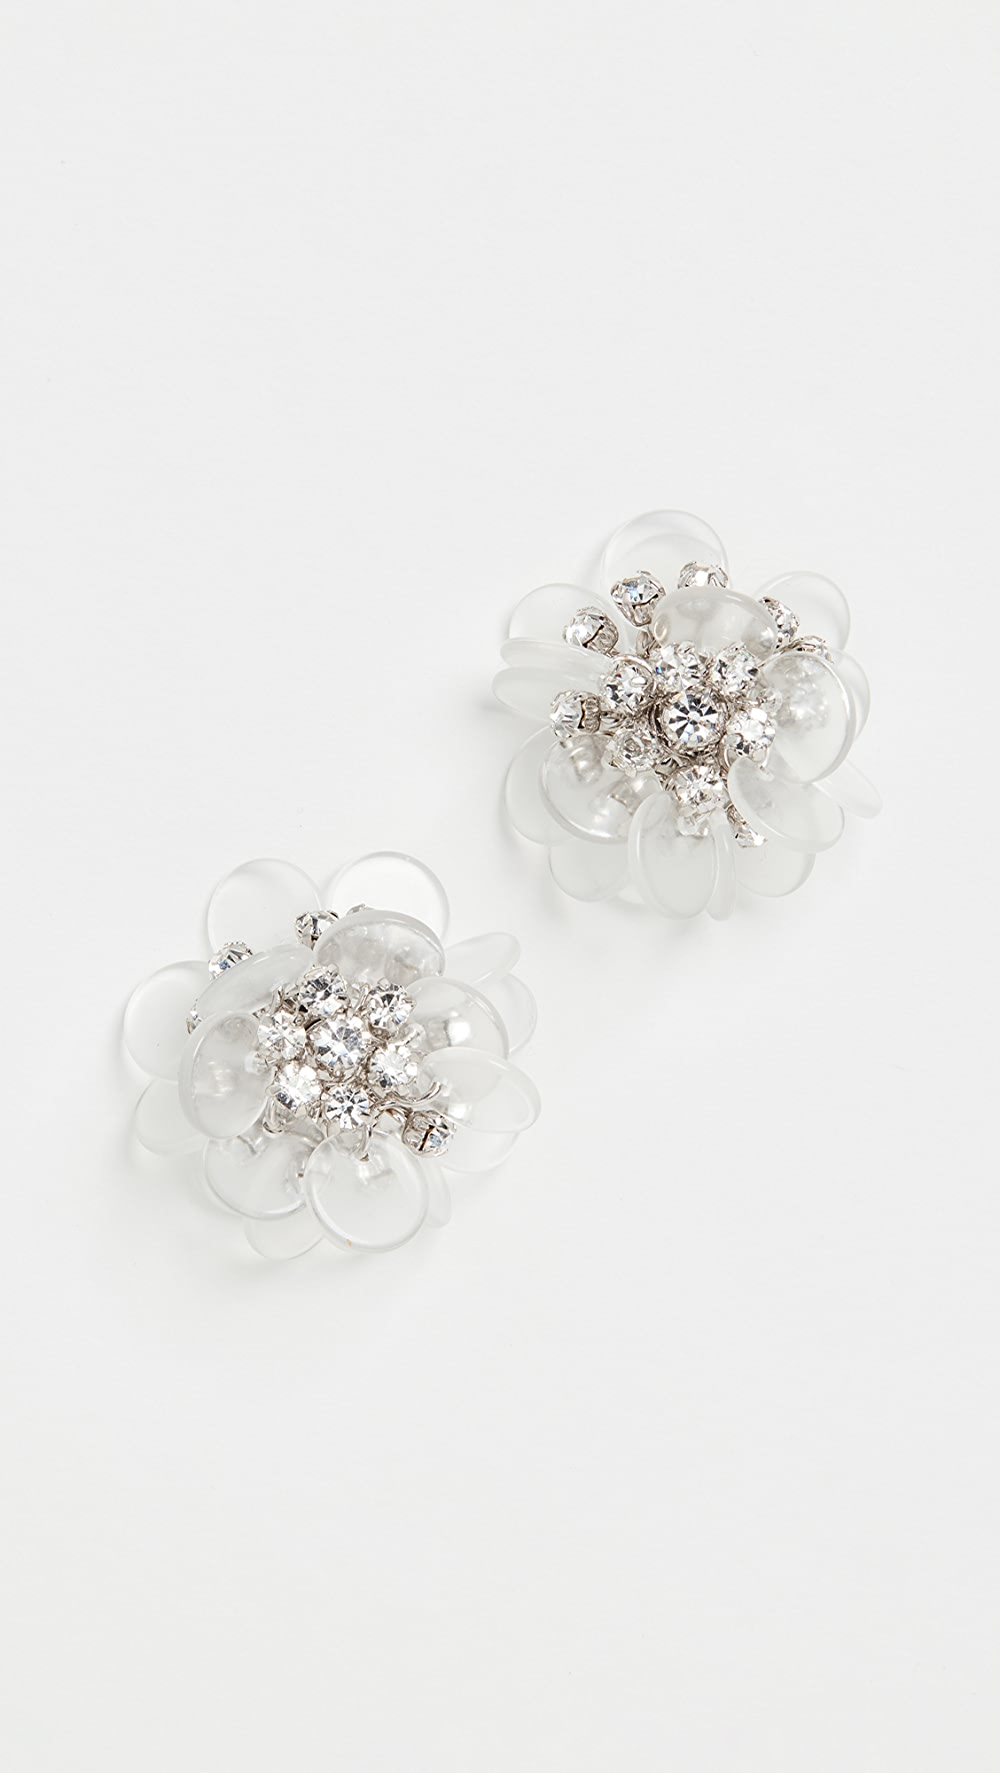 100% Quality Kate Spade New York - Studs Attractive And Durable